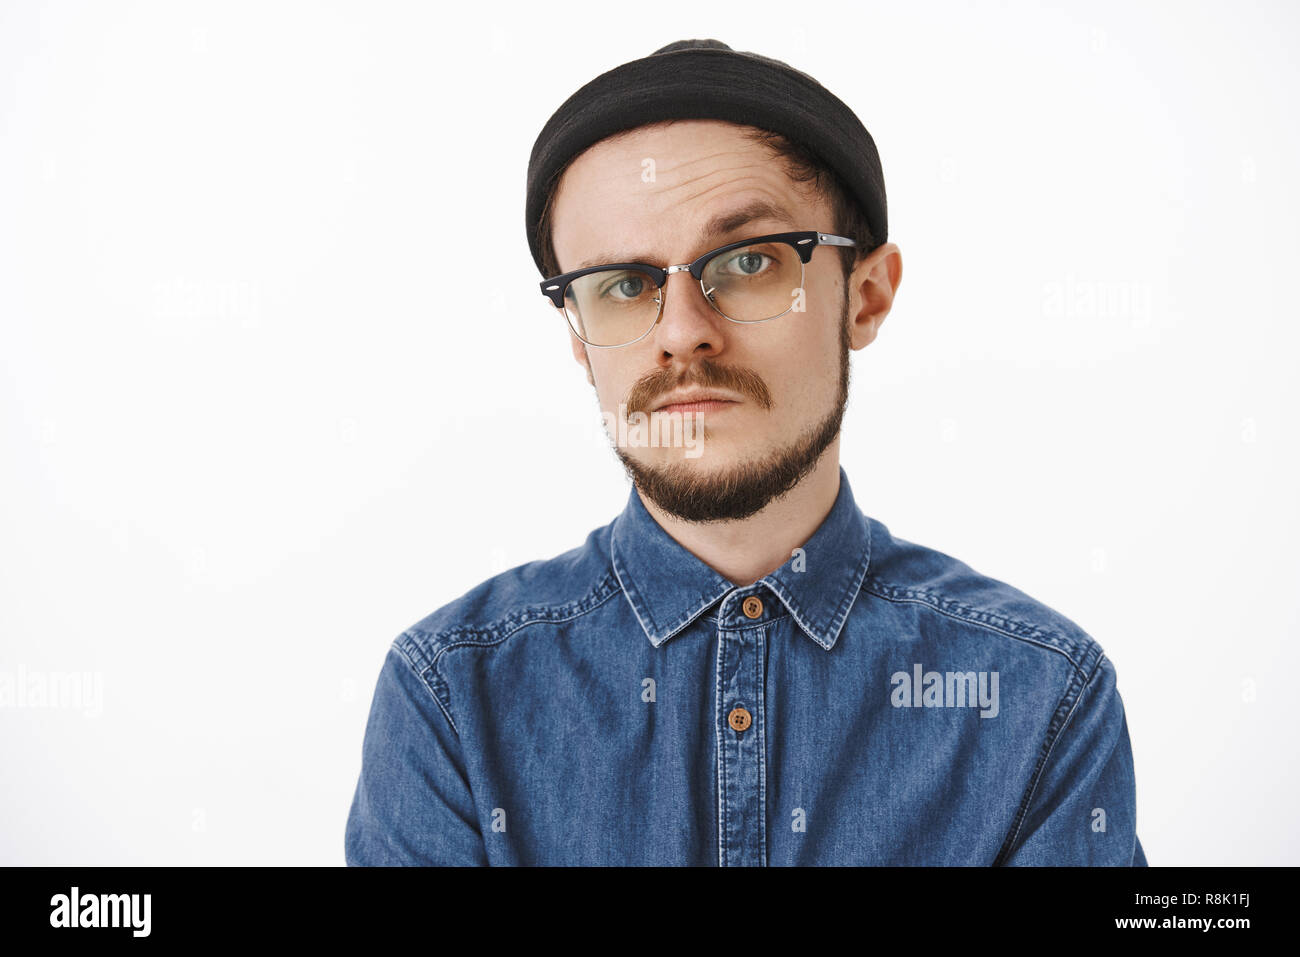 Doubtful and uncertain serious-looking bossy male entrepreneur in black beanie shirt and glasses raising one eyebrow in hesitation and disbelief standing unemotive and suspicious over gray background - Stock Image